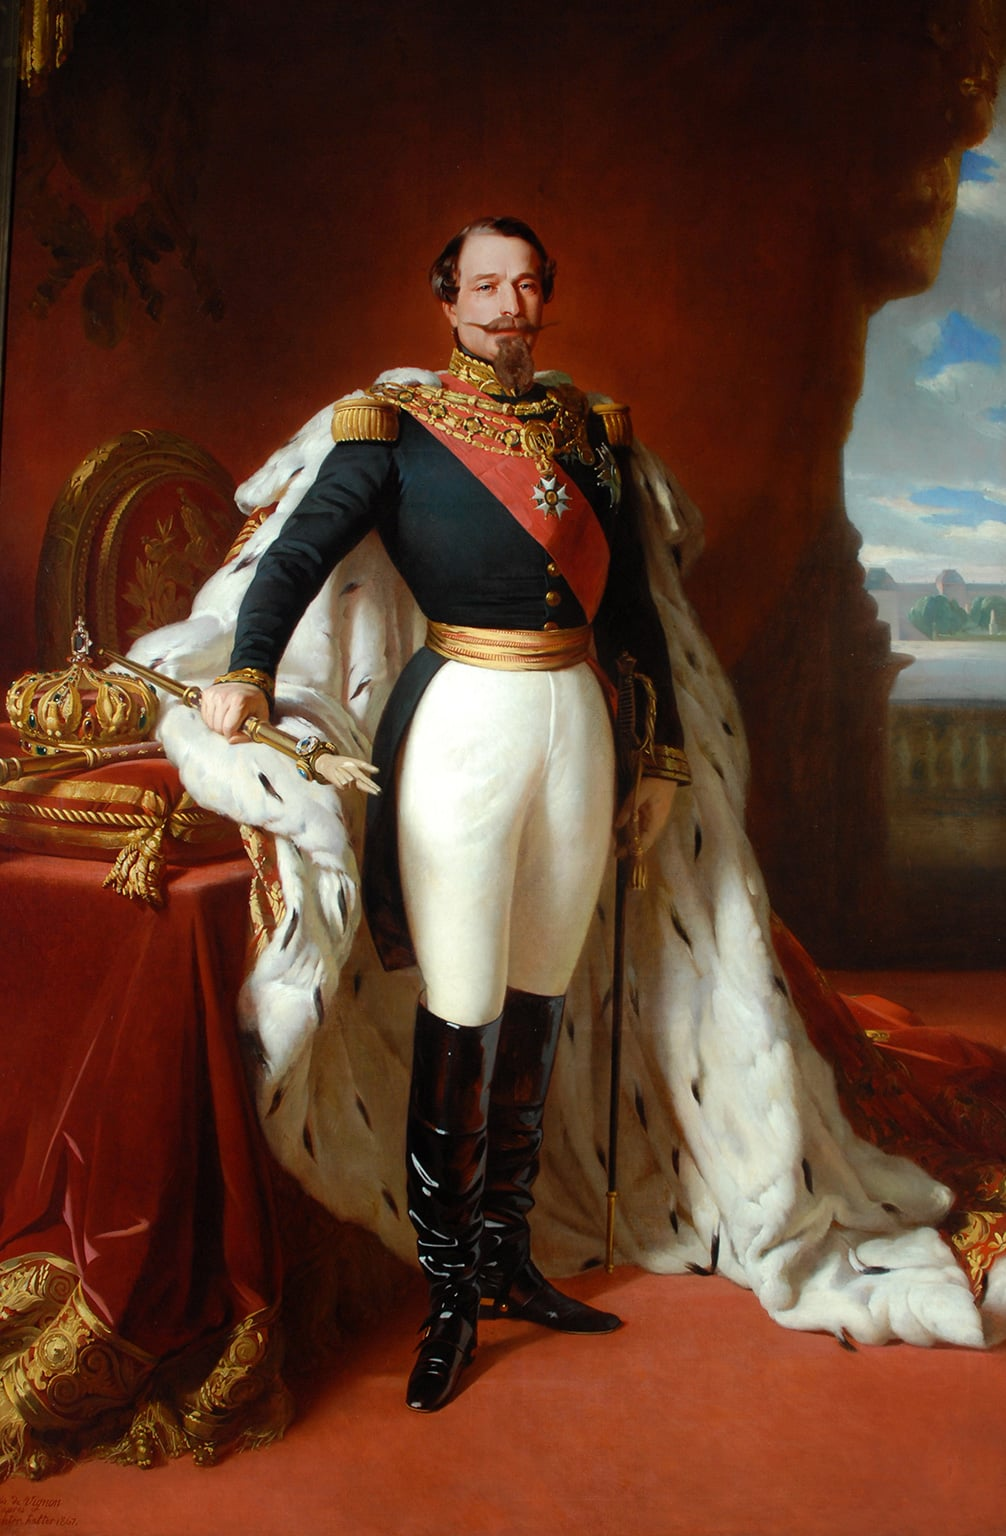 Napoleon III by Jules Vignon 1867. Depicted in full ceremonial outfit tailored by Henry Poole and Co., Napoleon III was Henry Poole's first warrant holder in 1858